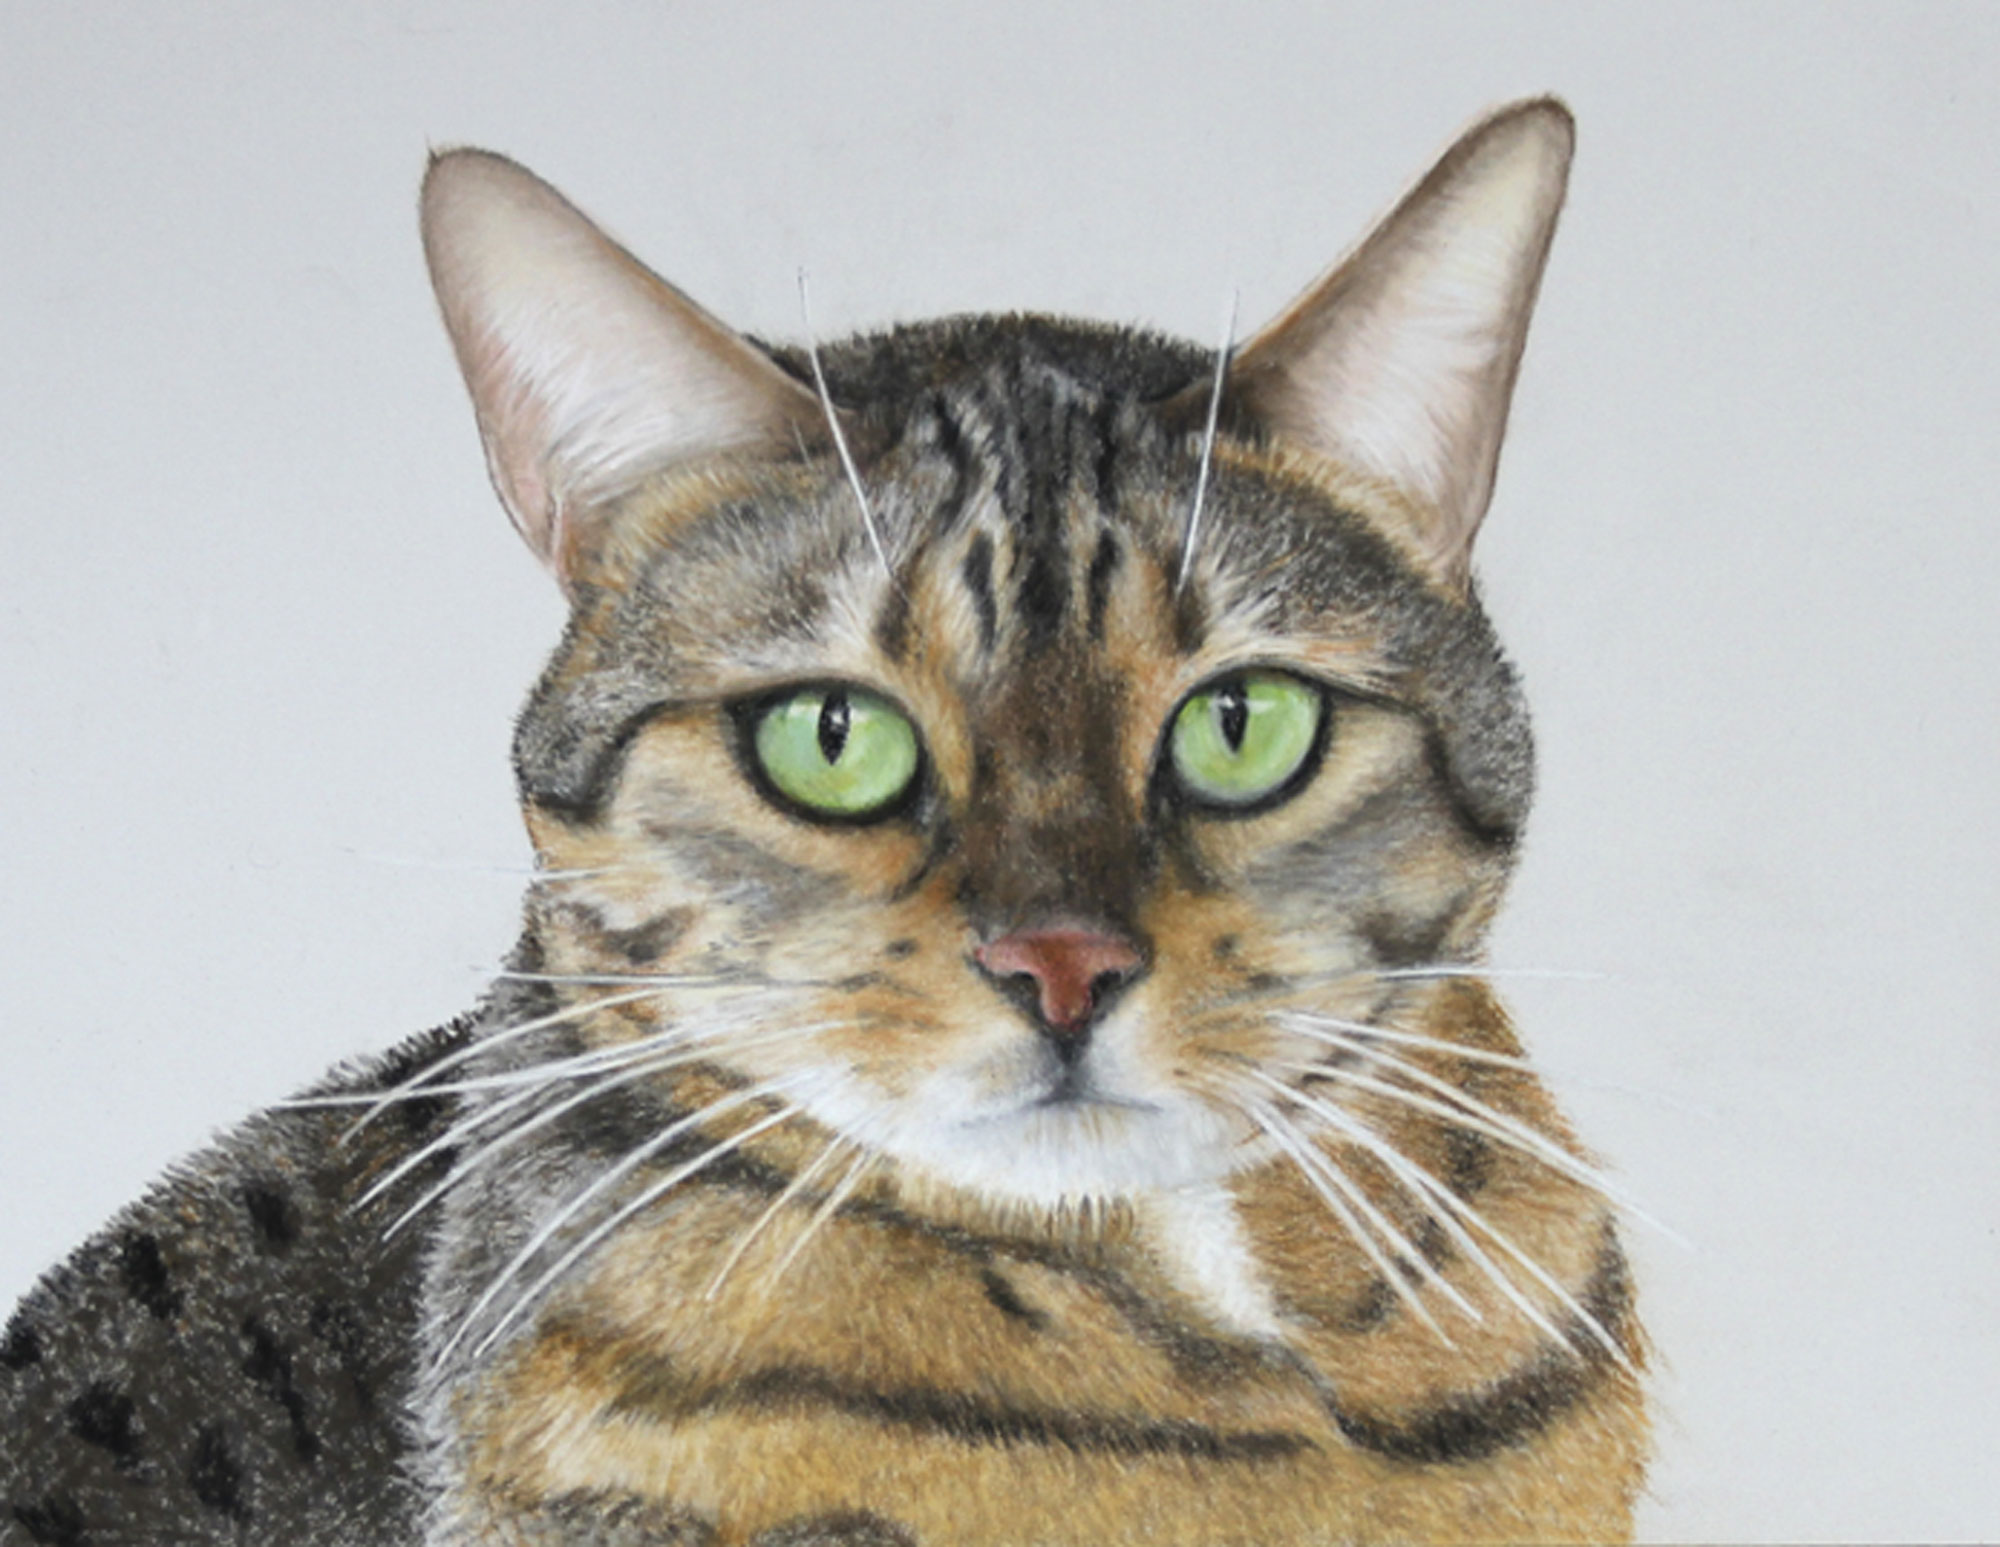 Cat pet portrait, tabby cat hand drawn at cato9tales